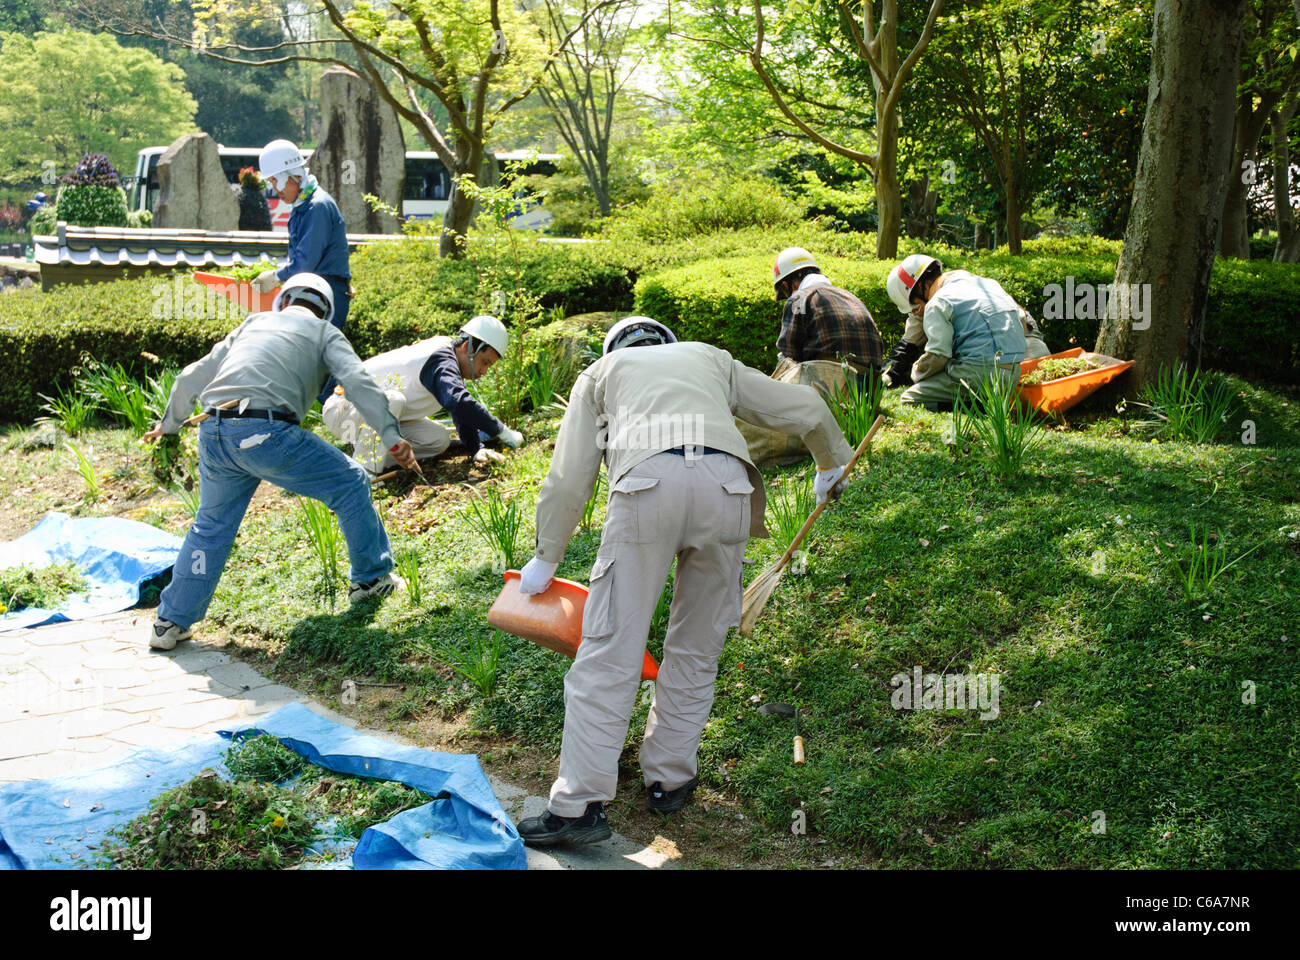 Japanese work team: gardeners at work in Japan. Group of people working together; men; workers demonstrating teamwork. - Stock Image